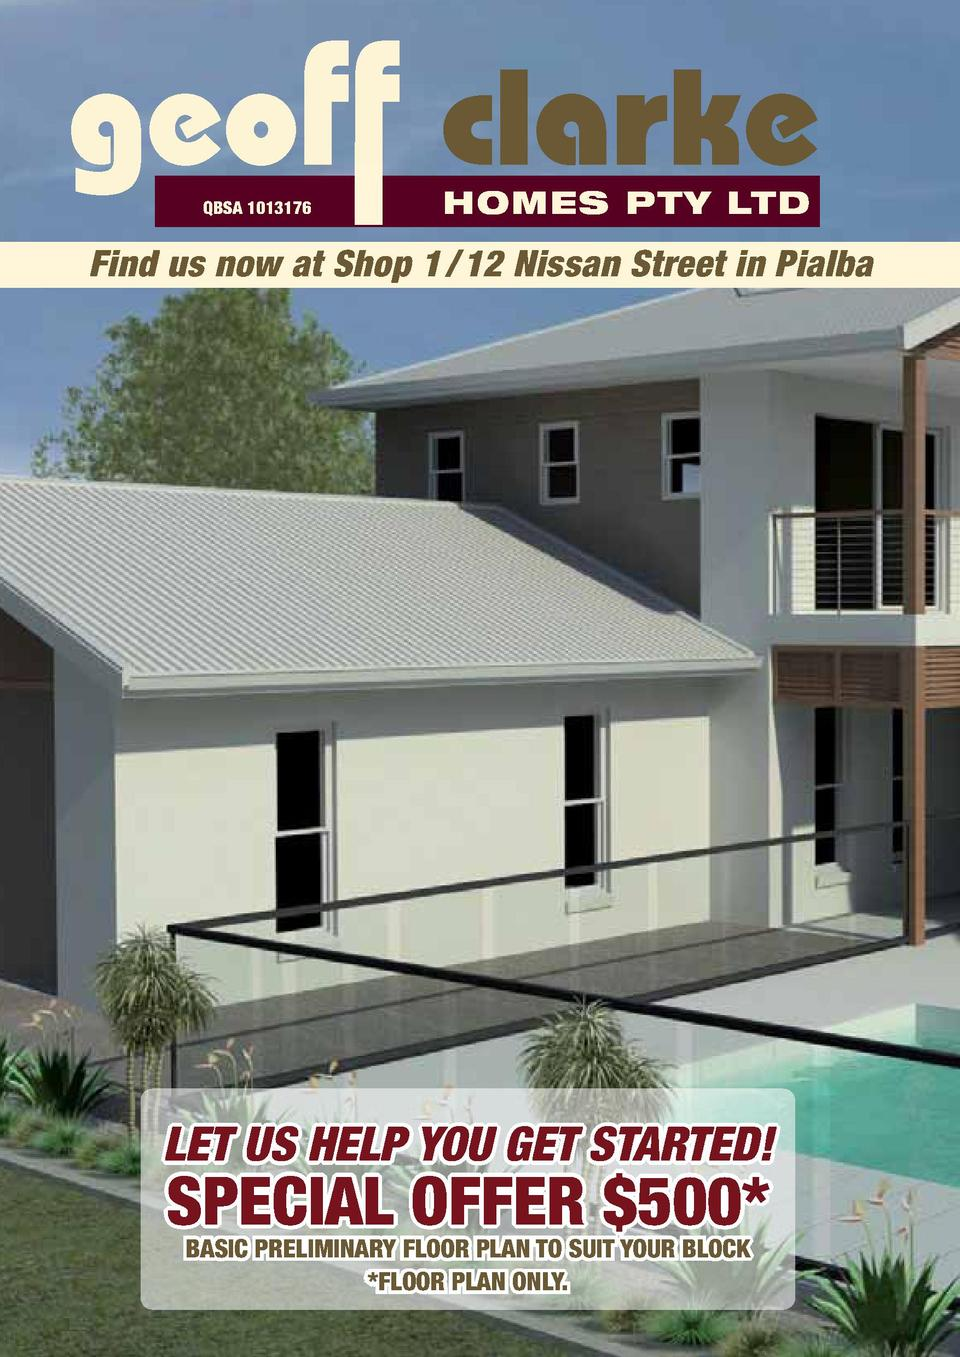 geoff clarke QBSA 1013176  HOMES PTY LTD  Find us now at Shop 1   12 Nissan Street in Pialba  LET US HELP YOU GET STARTED ...